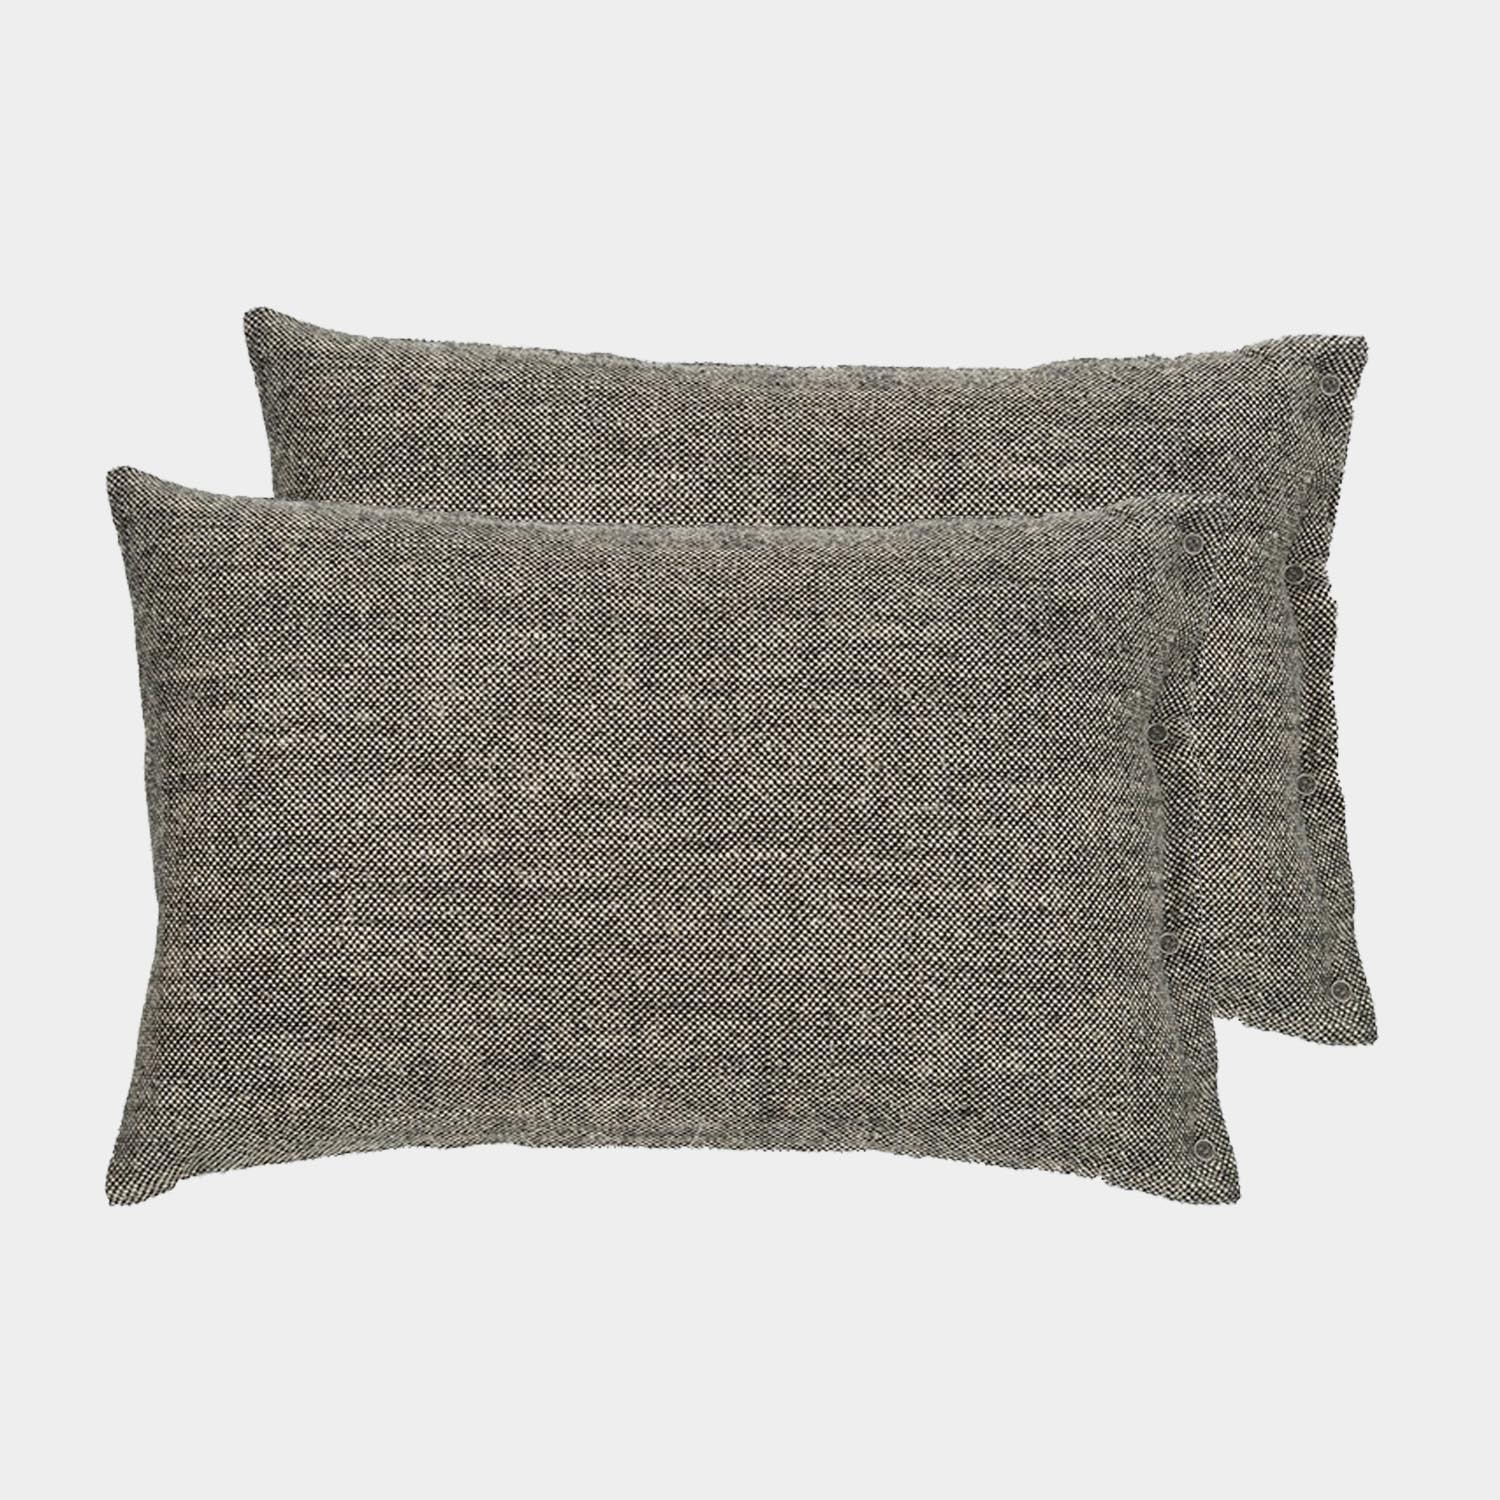 Pair of Rustic Linen Cushion Covers Black